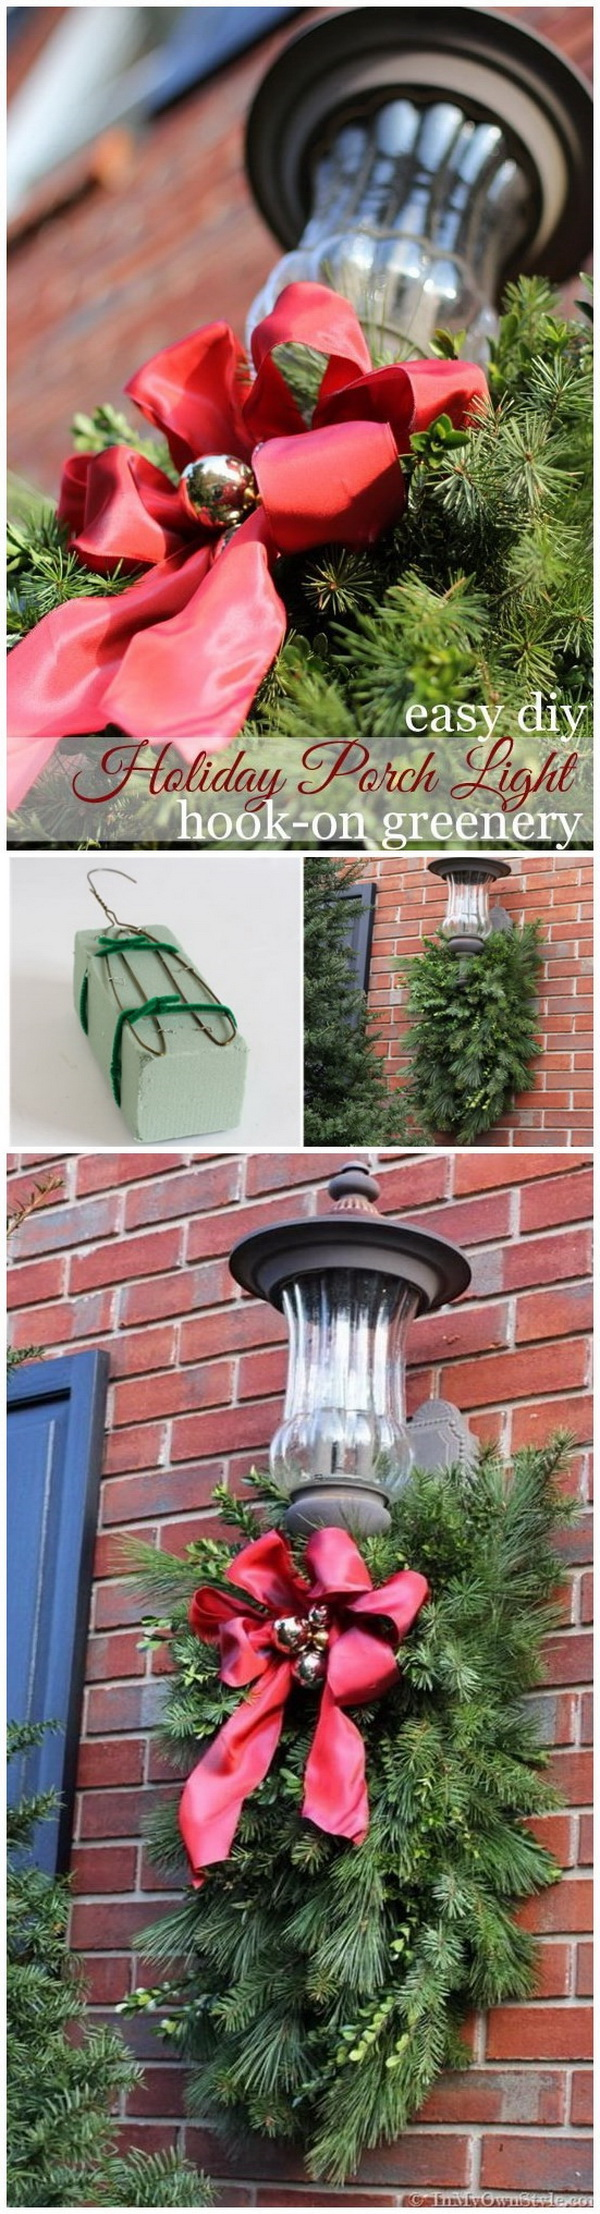 Made greenery sprays with Christmas tree cuttings, to hang it under the exterior light fixtures using a block of foam and a wire coat hanger. It is really a great DIY project to welcome your guest on your front porch!